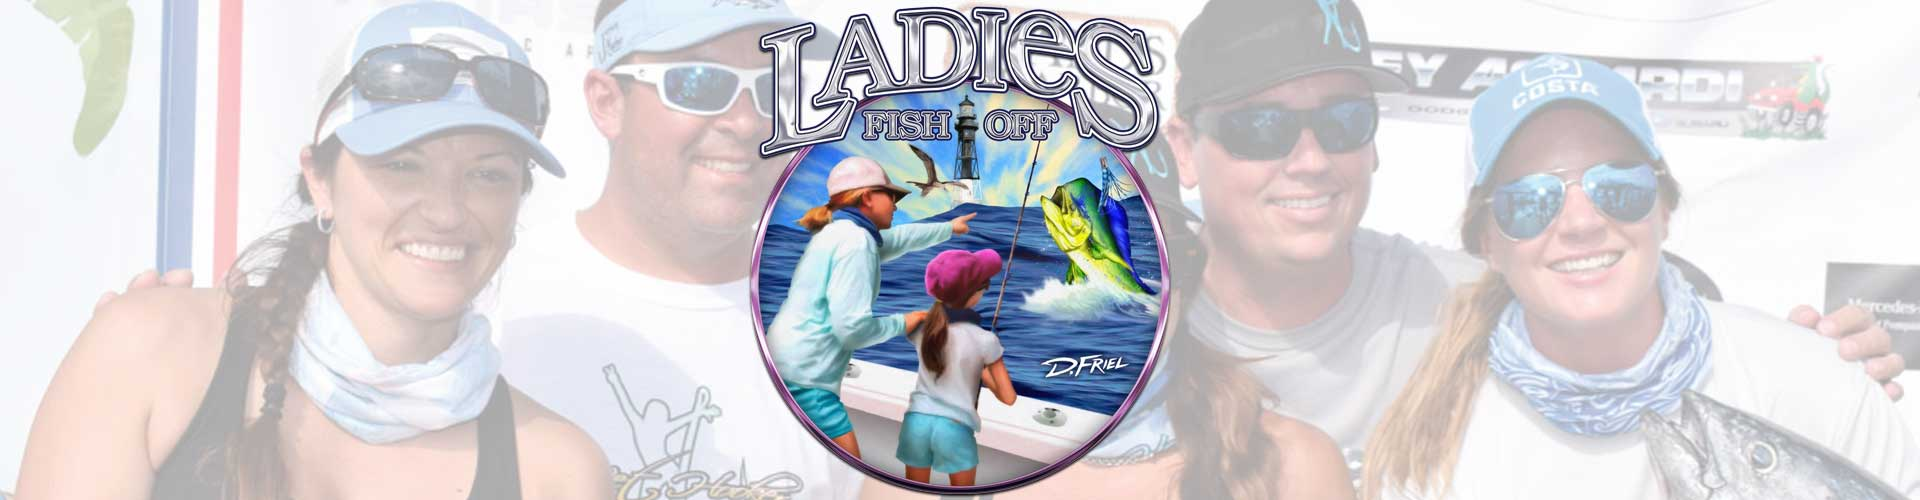 2019 Ladies Fish-Off - Live Scoring by CatchStat.com